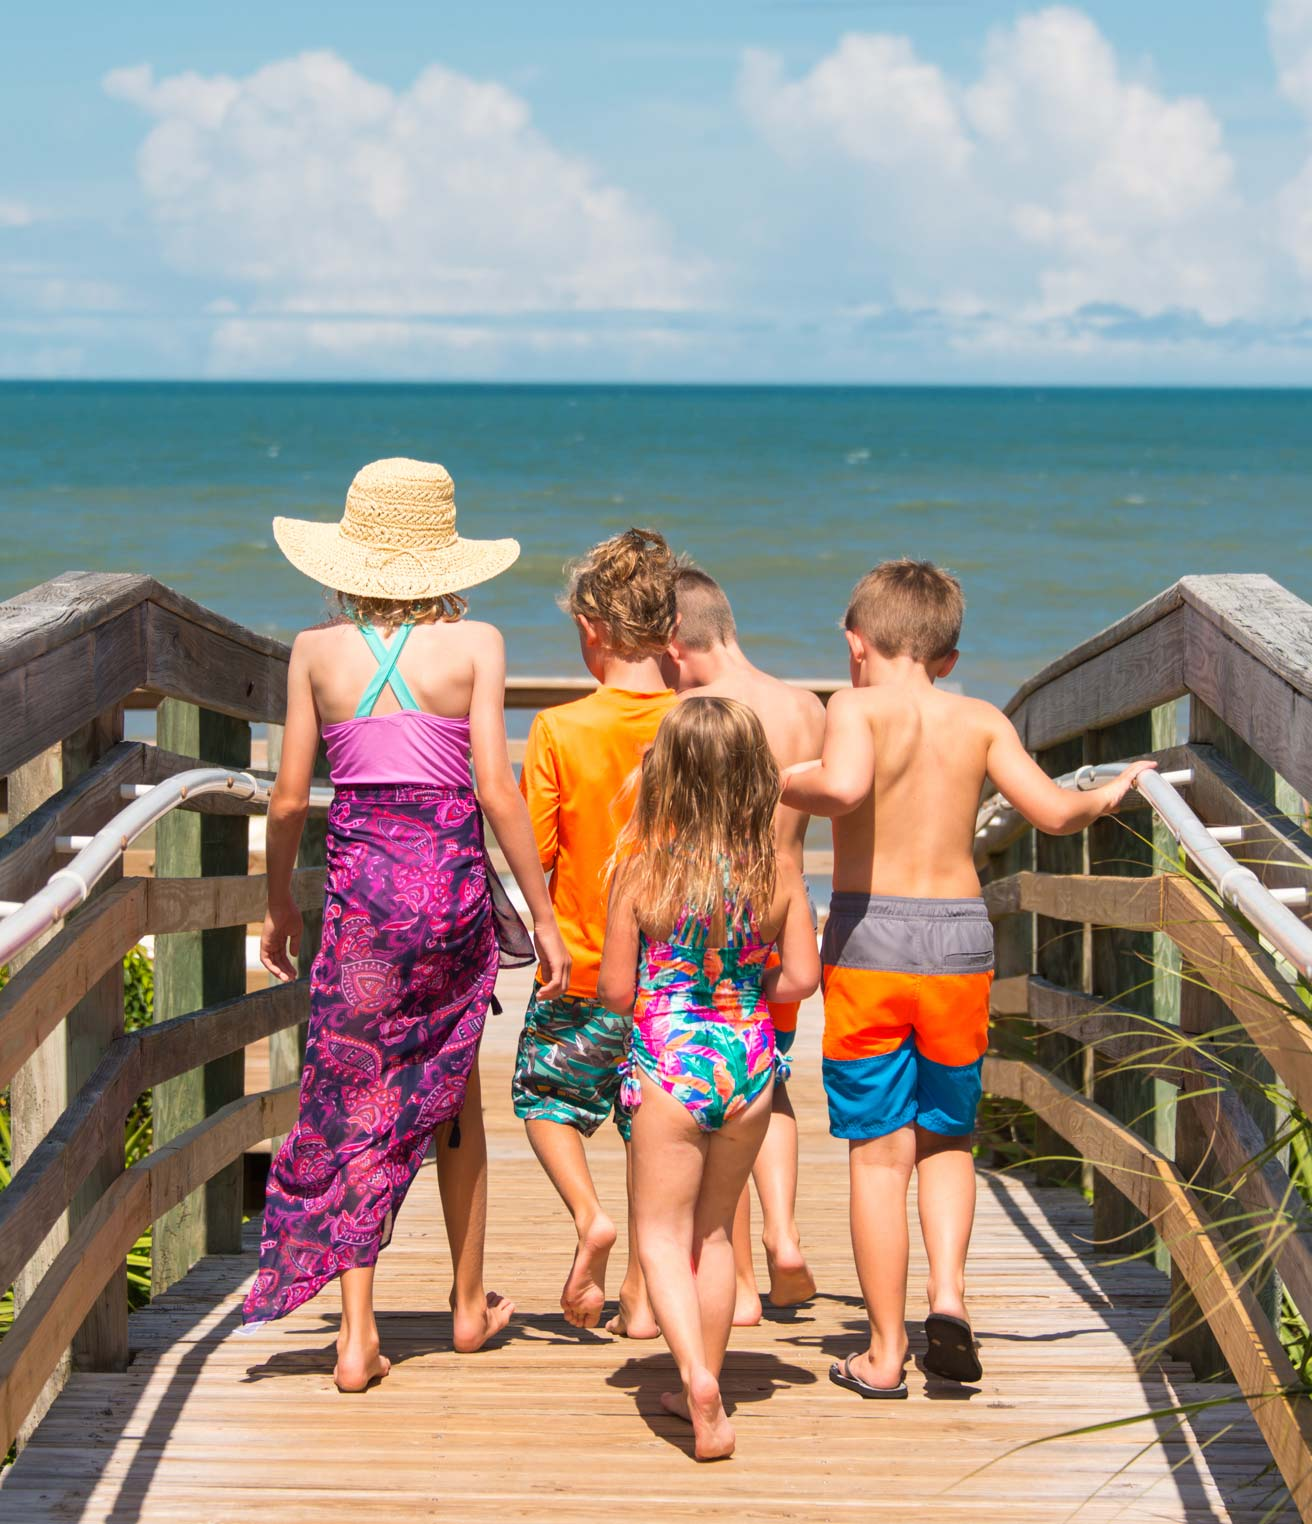 kids-on-boardwalk